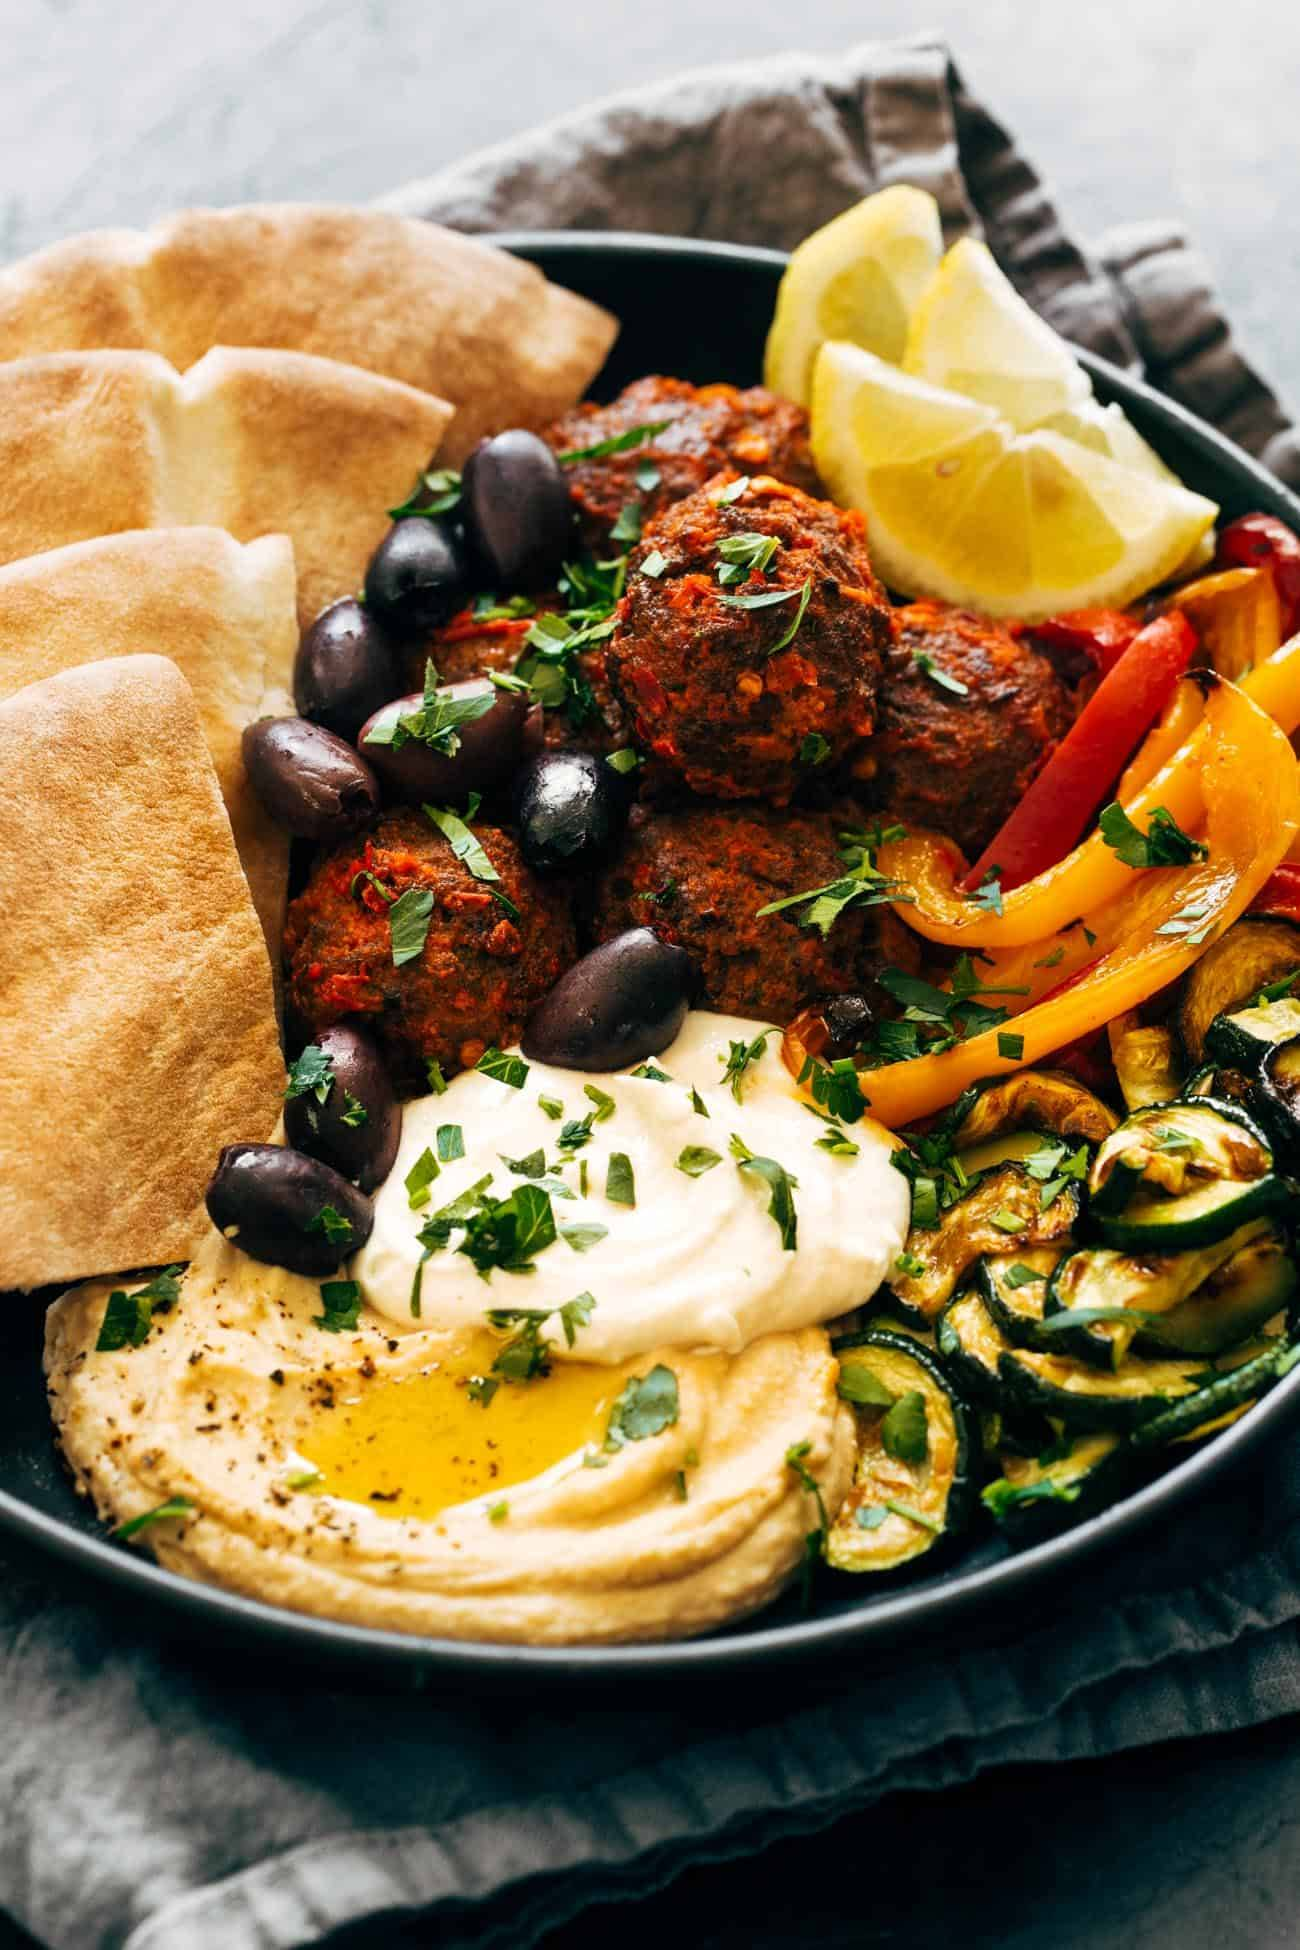 Close-up of Harissa Meatballs in a bowl